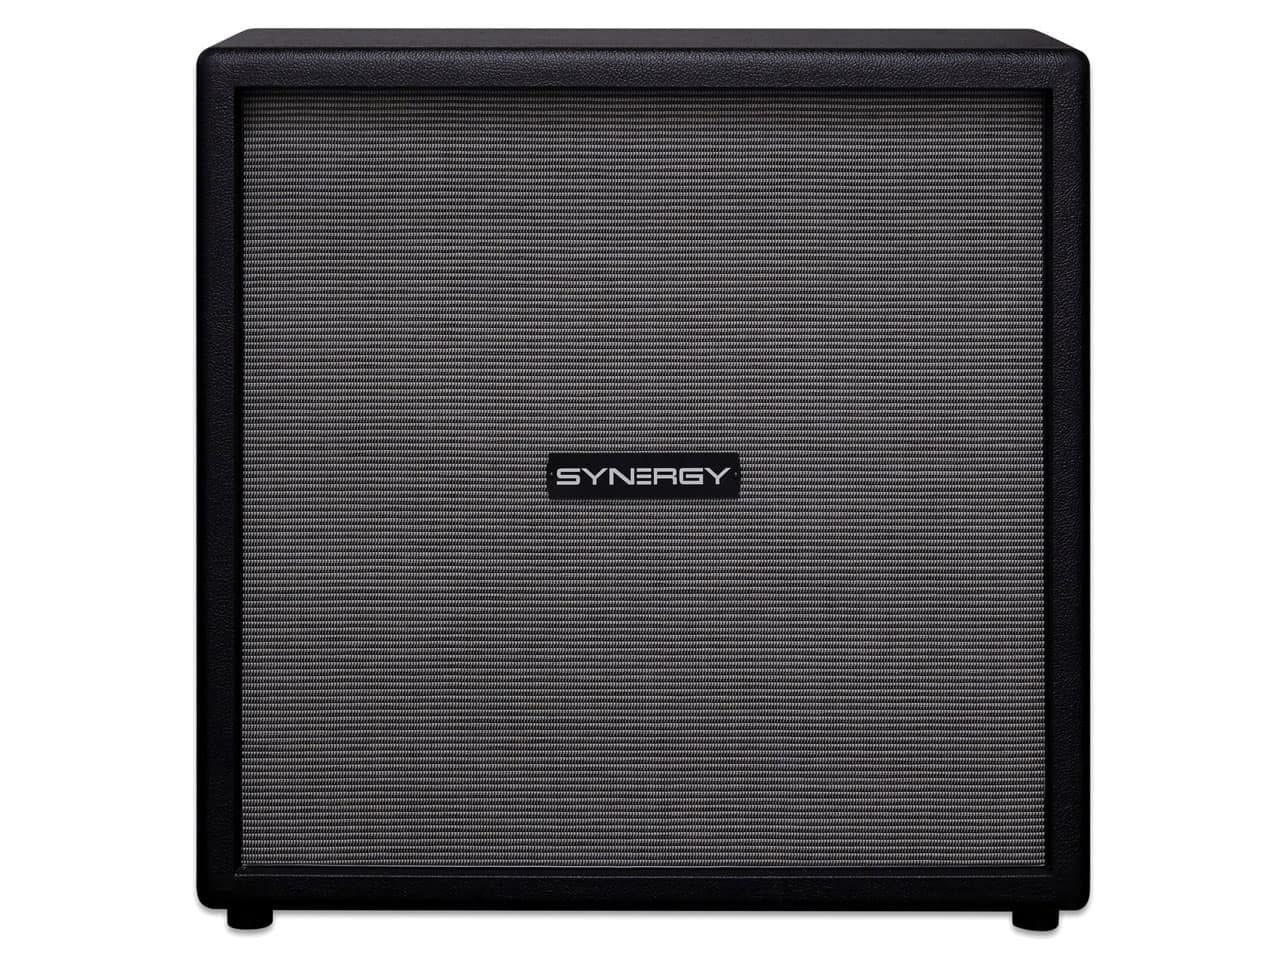 SYNERGY AMPS(シナジーアンプ) 4×12 Cabinet (スピーカーキャビネット)